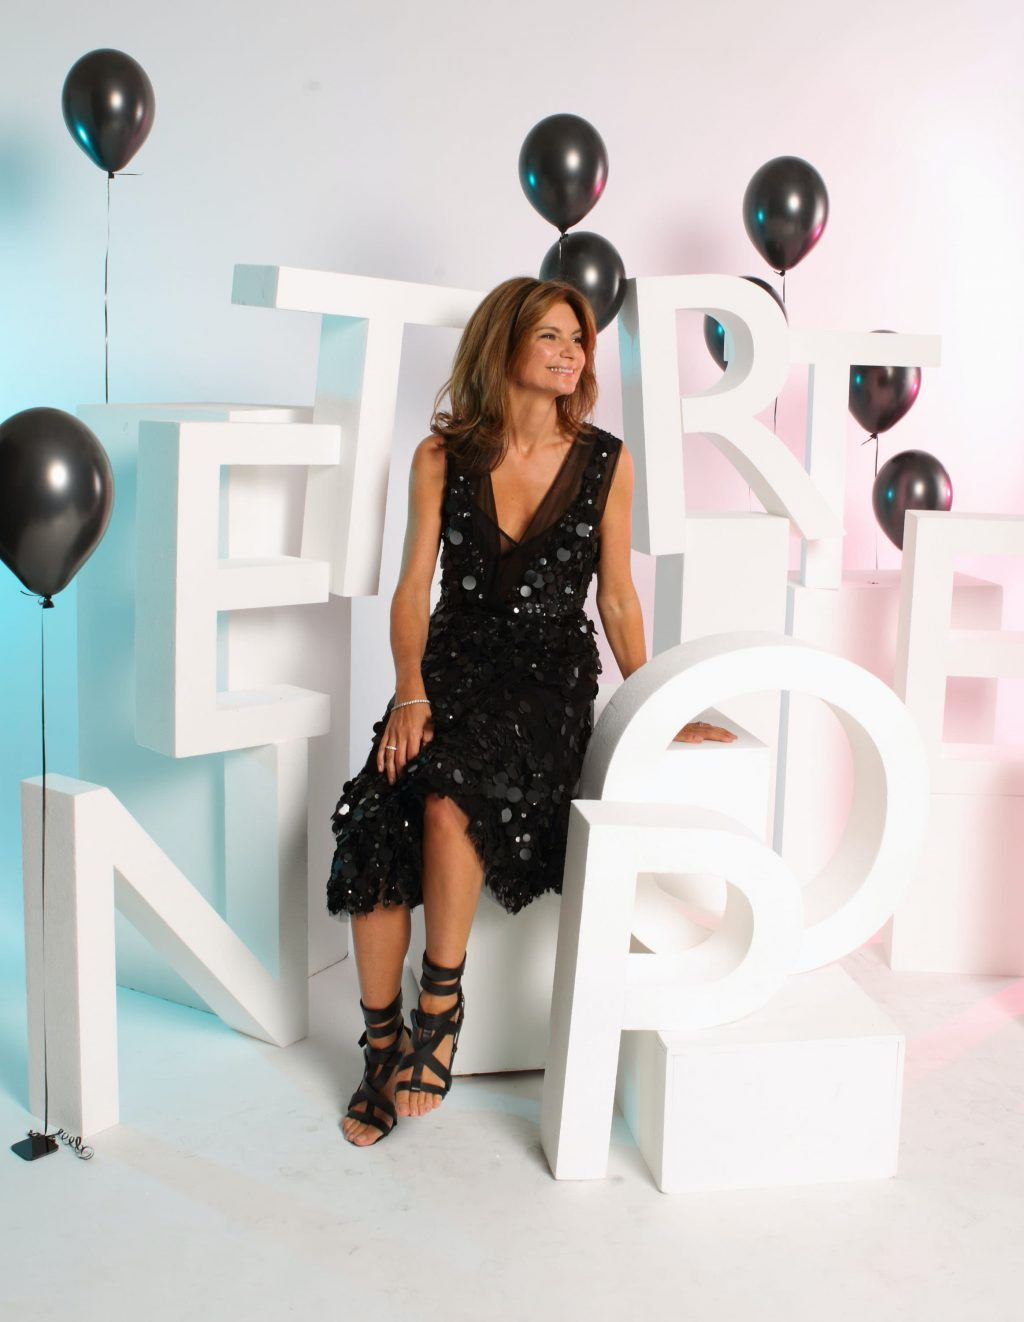 Natalie Massenet attends the 10th Birthday party for Net-A-Porter at Westfield on July 7, 2010 in London, England (Guliver Photos / Getty Images)